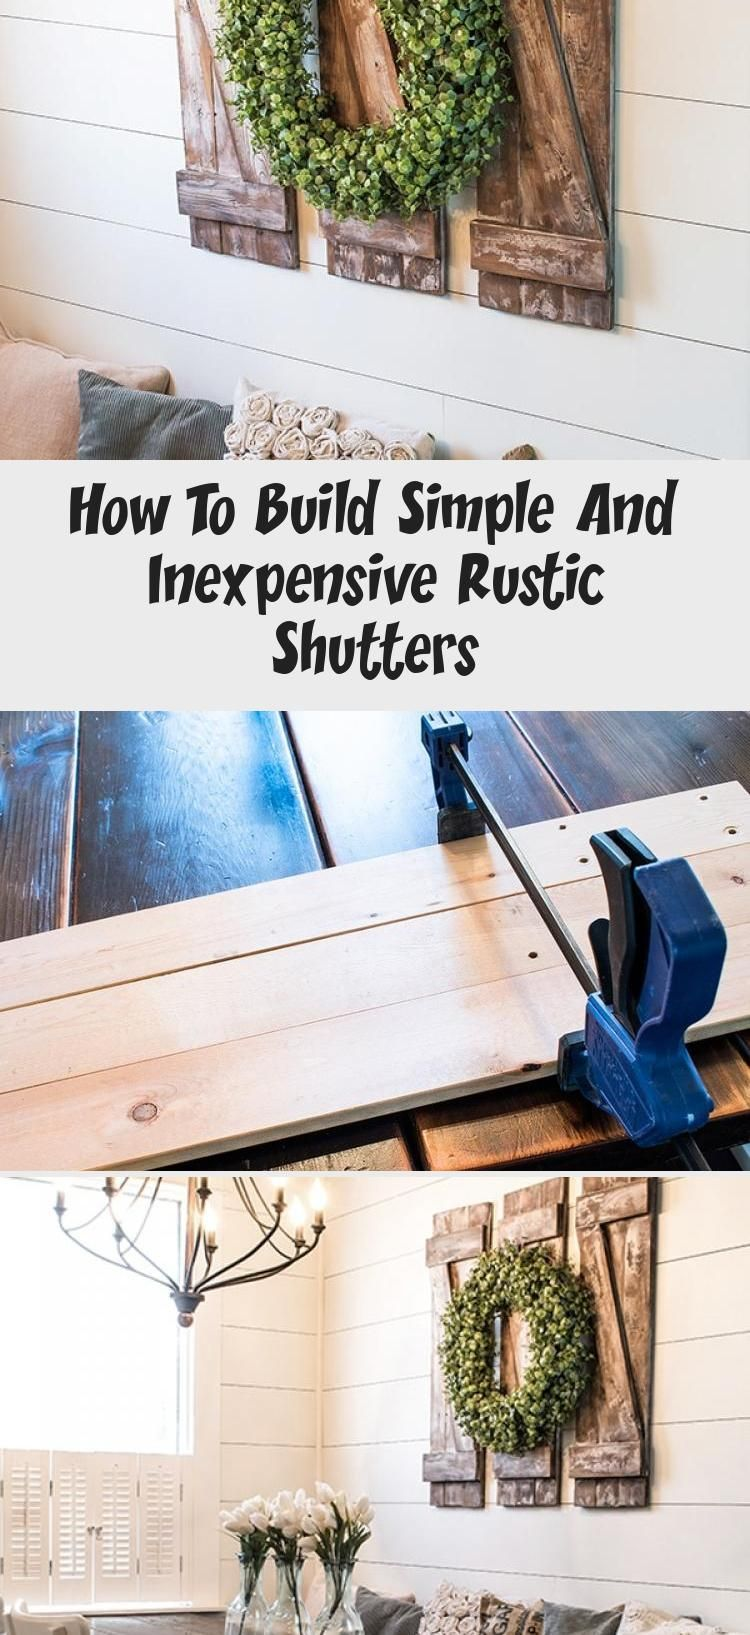 How To Build Simple And Inexpensive Rustic Shutters Information Decor In 2020 Rustic Shutters Shutter Decor Decor